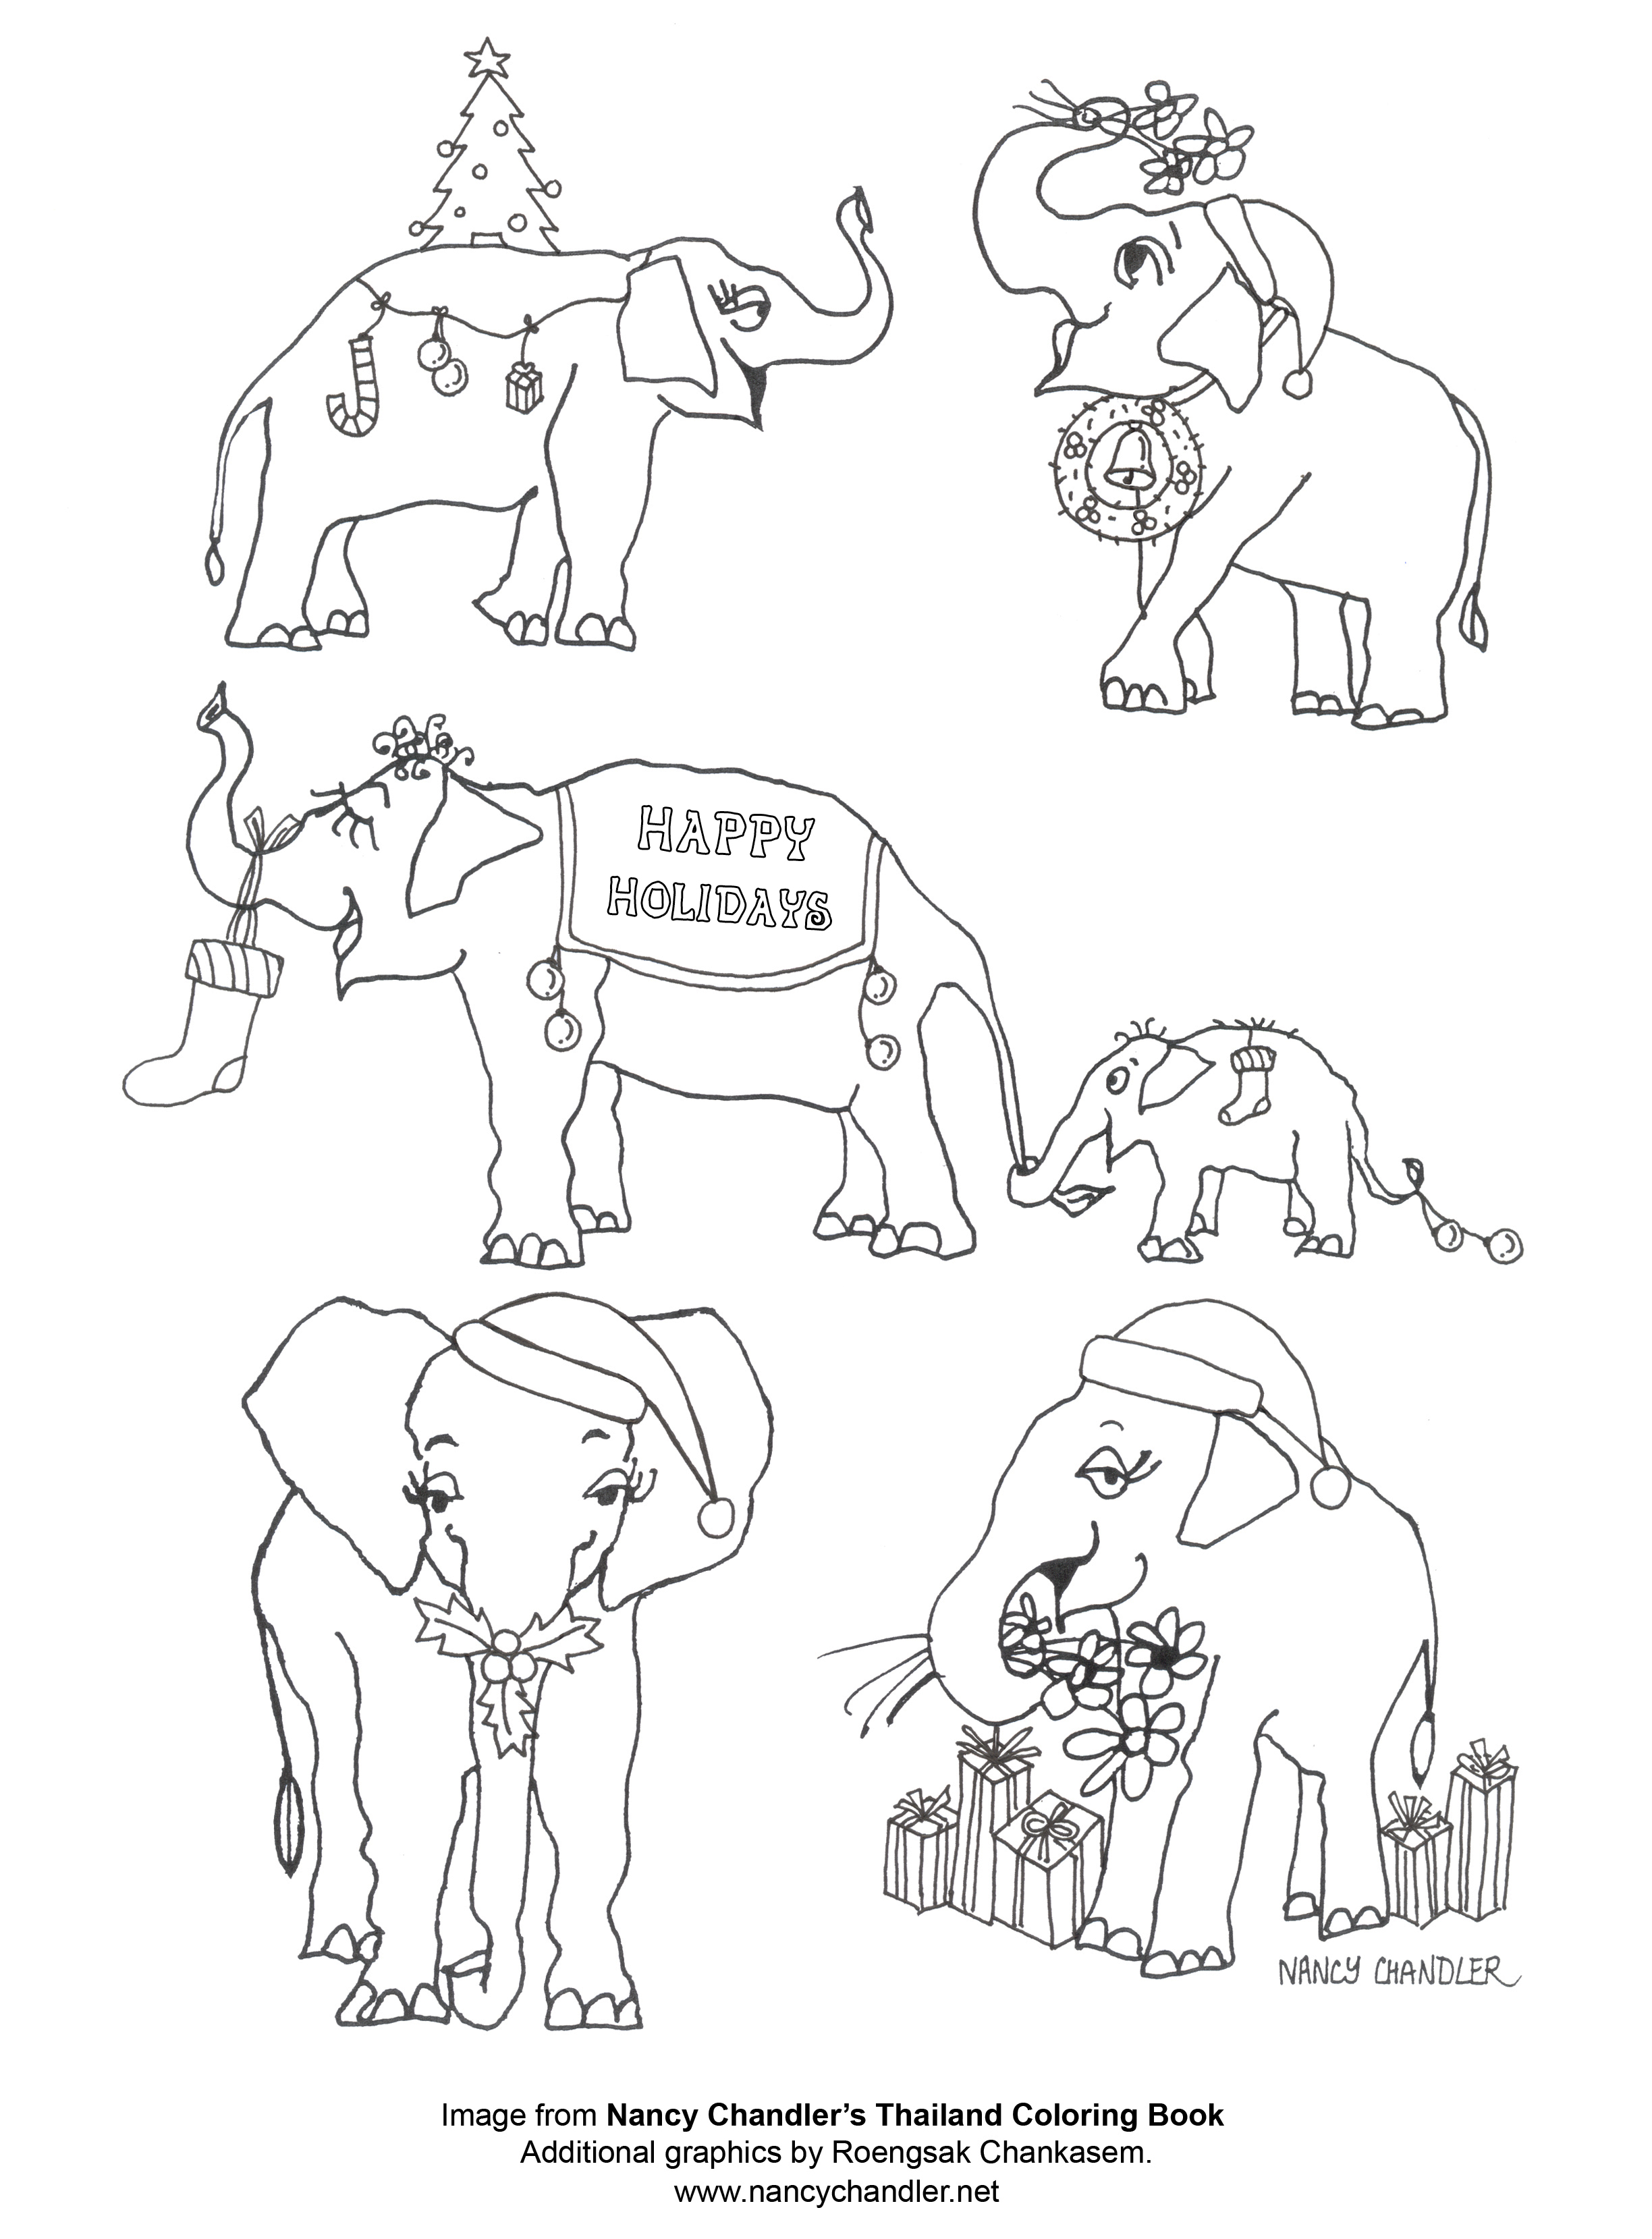 Nancy's Christmas Elephants Coloring Page